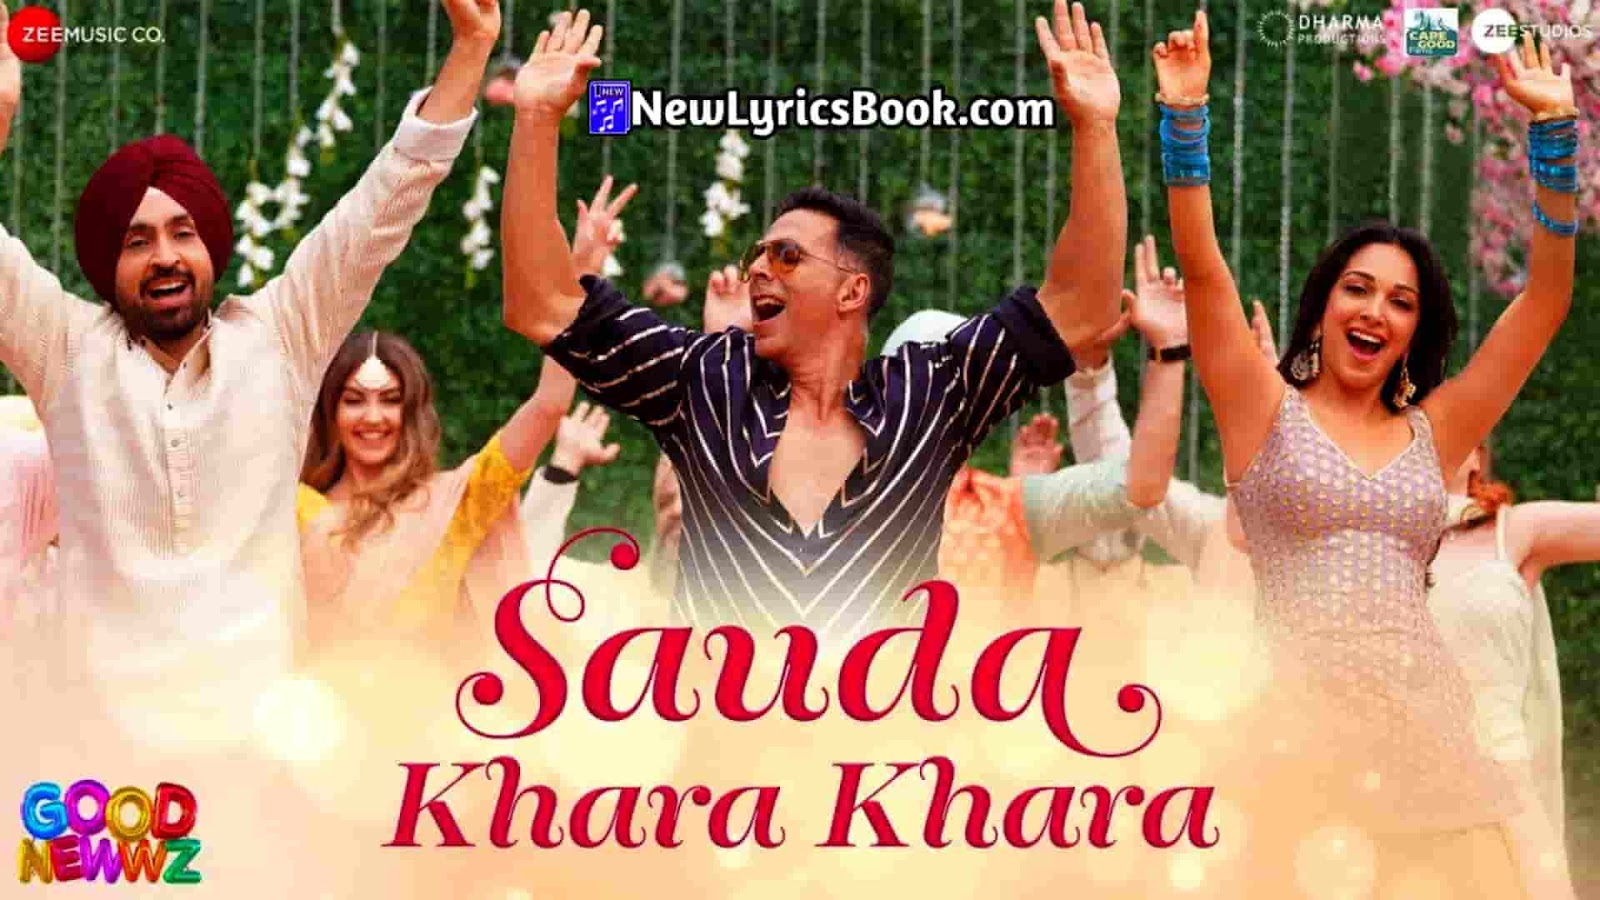 Sauda Khara Khara Song Lyrics